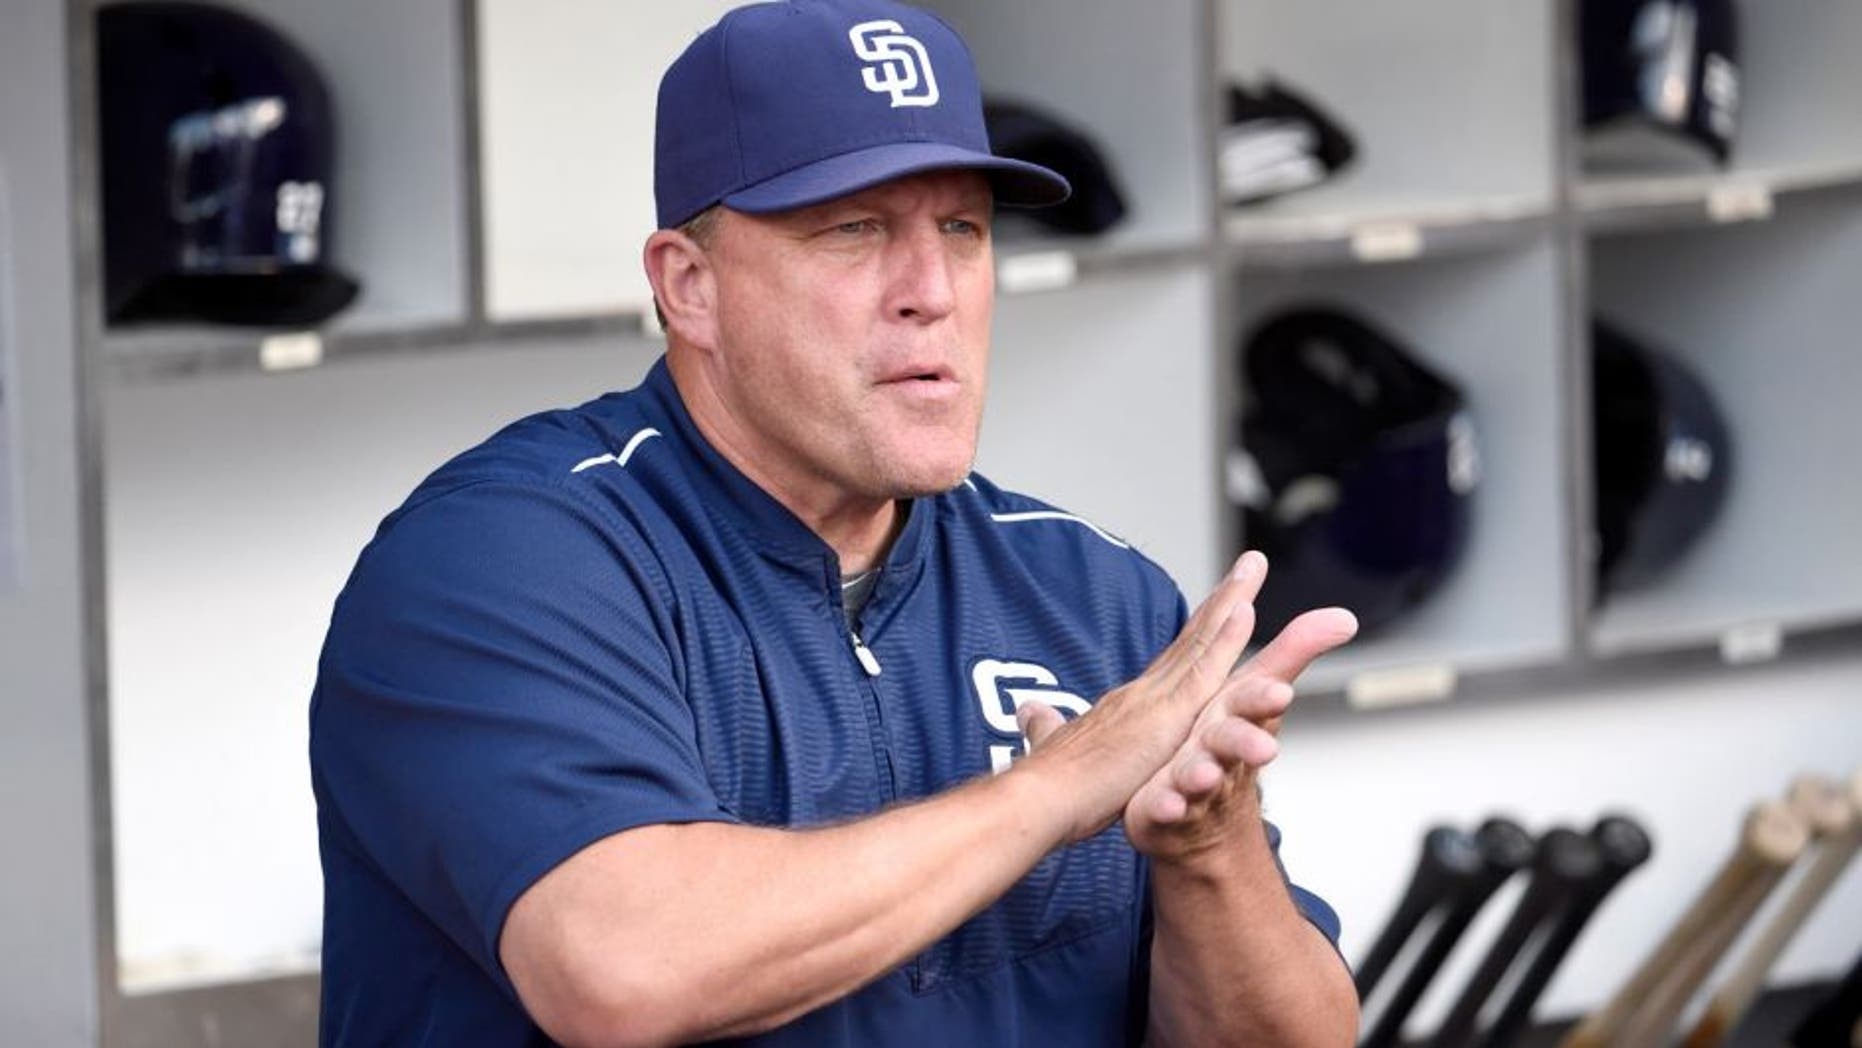 SAN DIEGO, CA - JULY 17: Interim manager Pat Murphy #24 of the San Diego Padres looks out from the dugout before a baseball game against the Colorado Rockies at Petco Park July 17, 2015 in San Diego, California. (Photo by Denis Poroy/Getty Images)